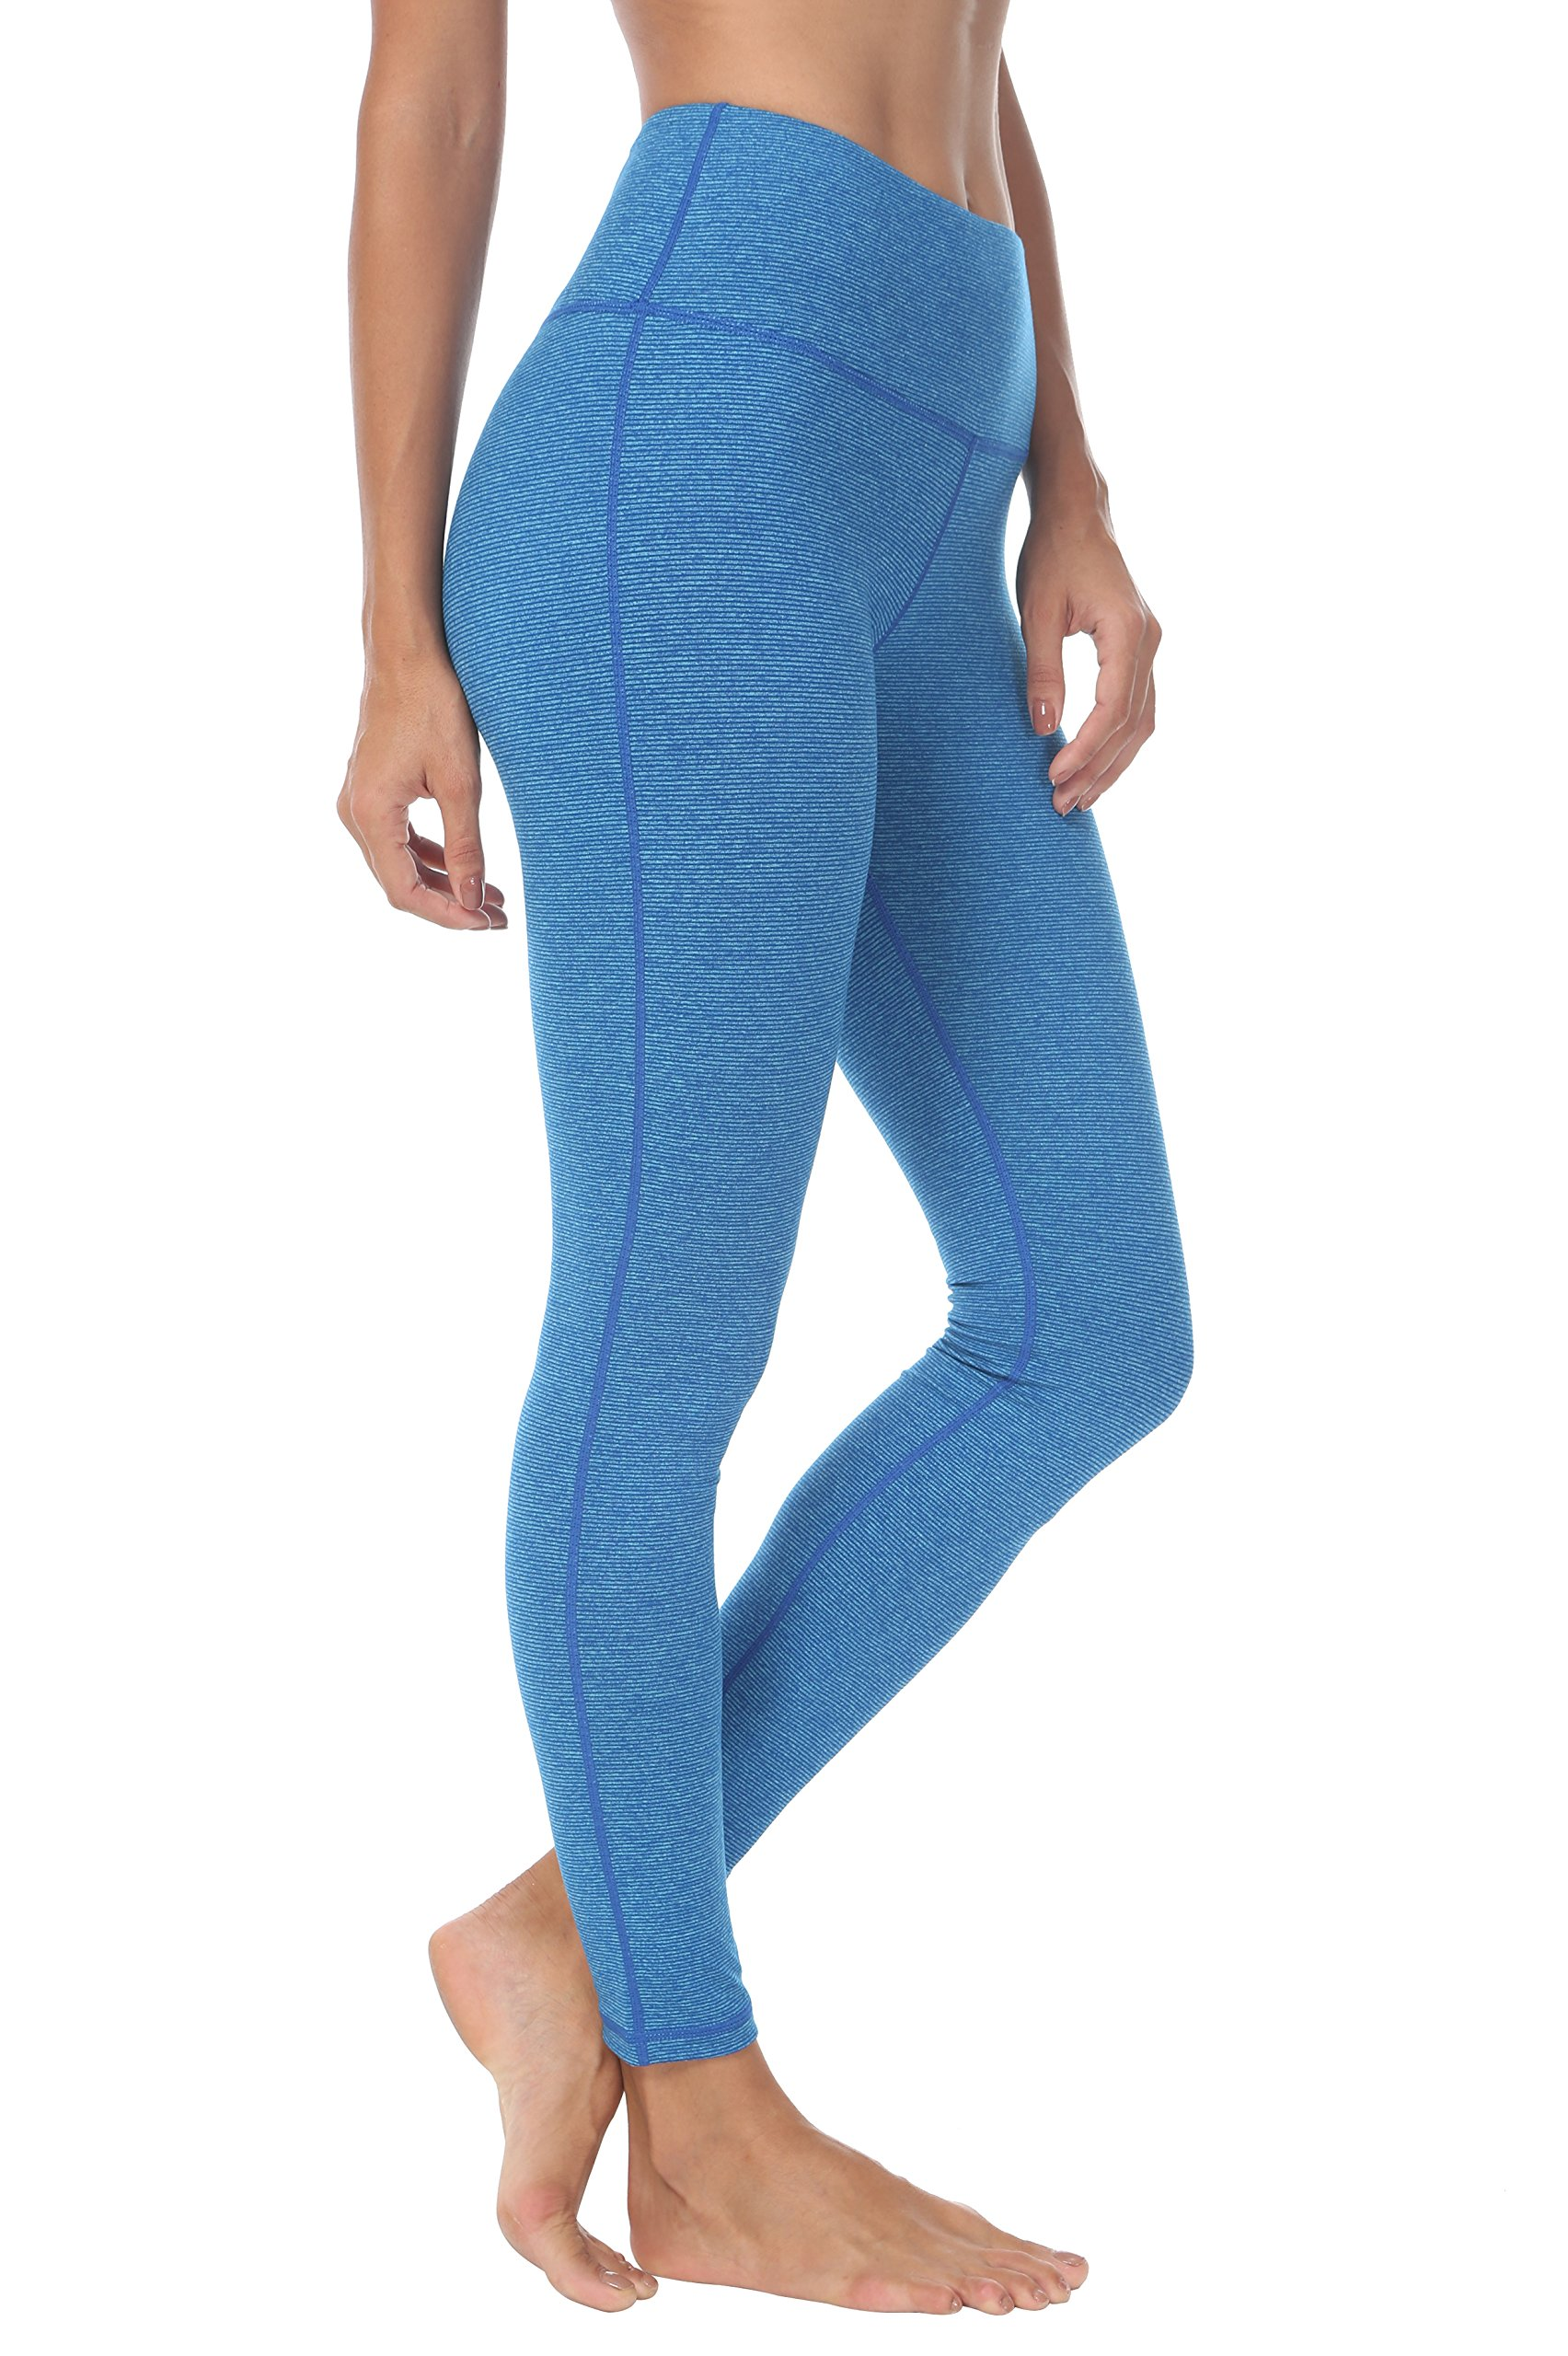 Queenie Ke Women High Waist Hidden Pockets Sport Legging Yoga Pants Running Tights Size M ColorBlue Stripes